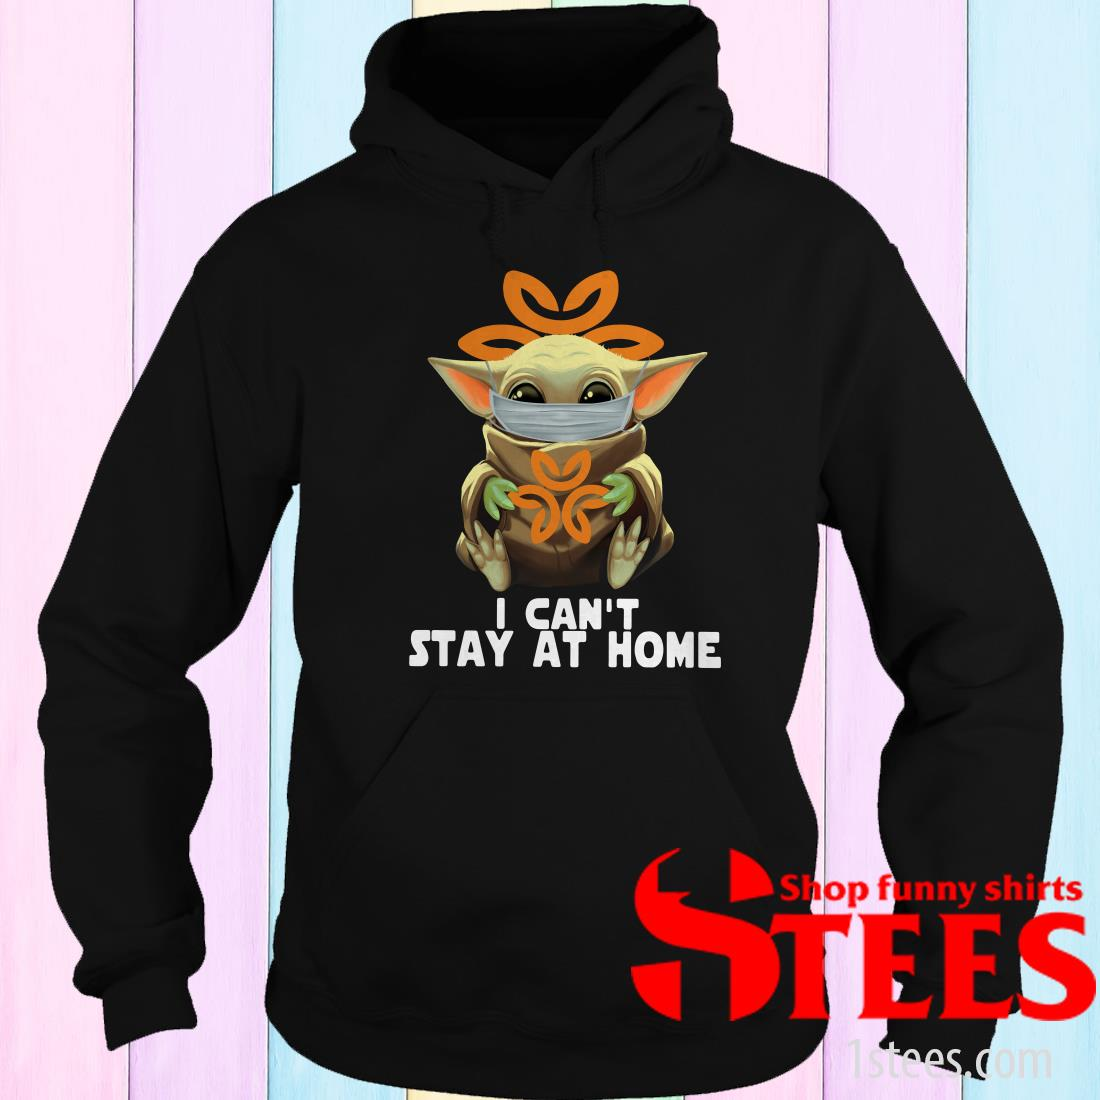 Baby Yoda Face Mask Dignity Health Can't Stay At Home Shirt